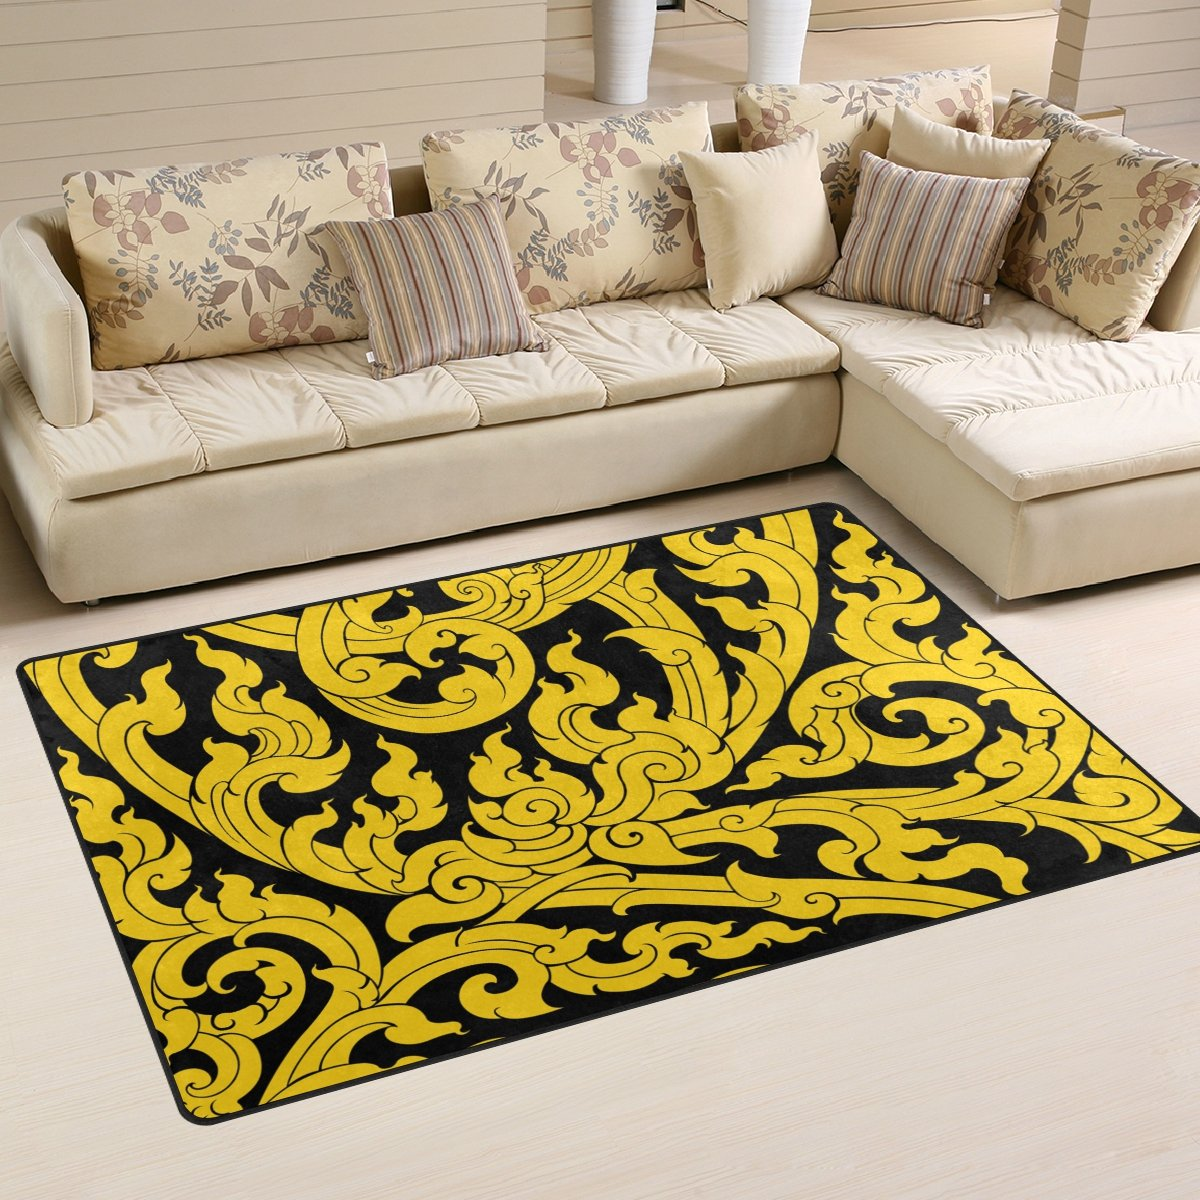 DEYYA Thai Art Tree Leave Non-slip Area Rug Rugs for Living Room Decoration 60 x 39 Inch